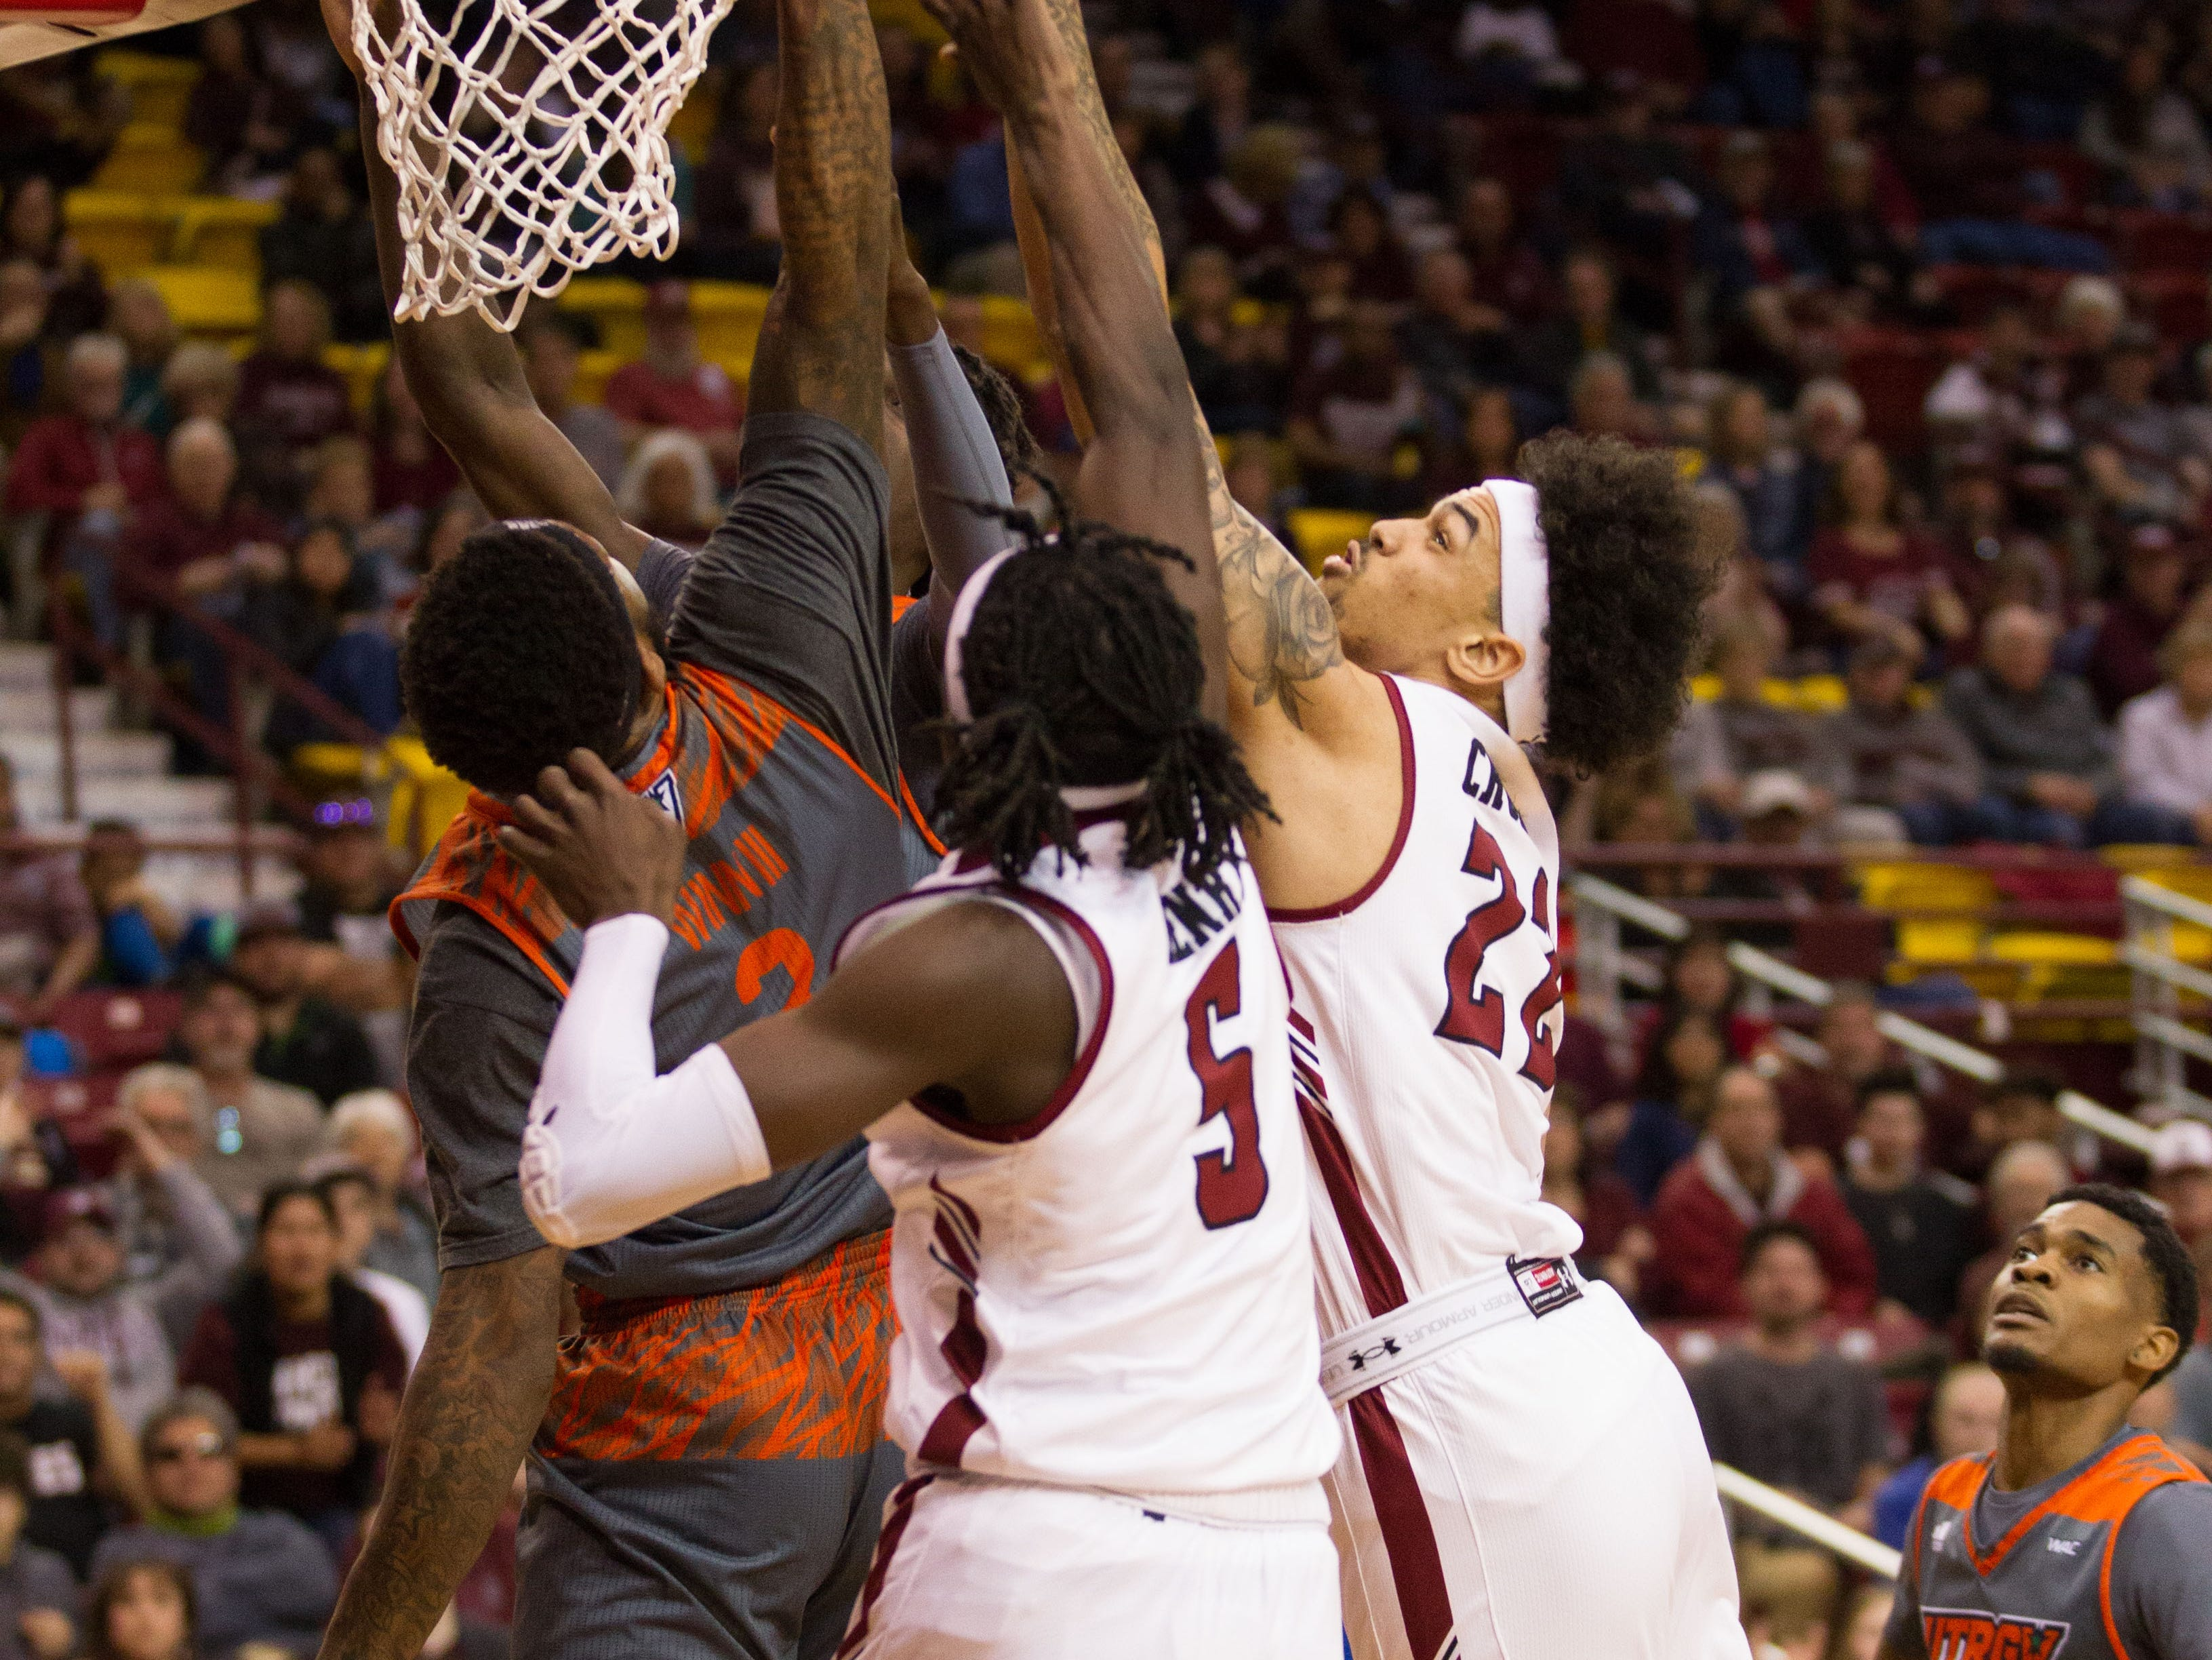 Eli Chuhu, 22 and Clayton Henry, 5, battle for the offensive rebound. The NMSU Aggies hosted UT Rio Grande Valley on February 23, 2019.